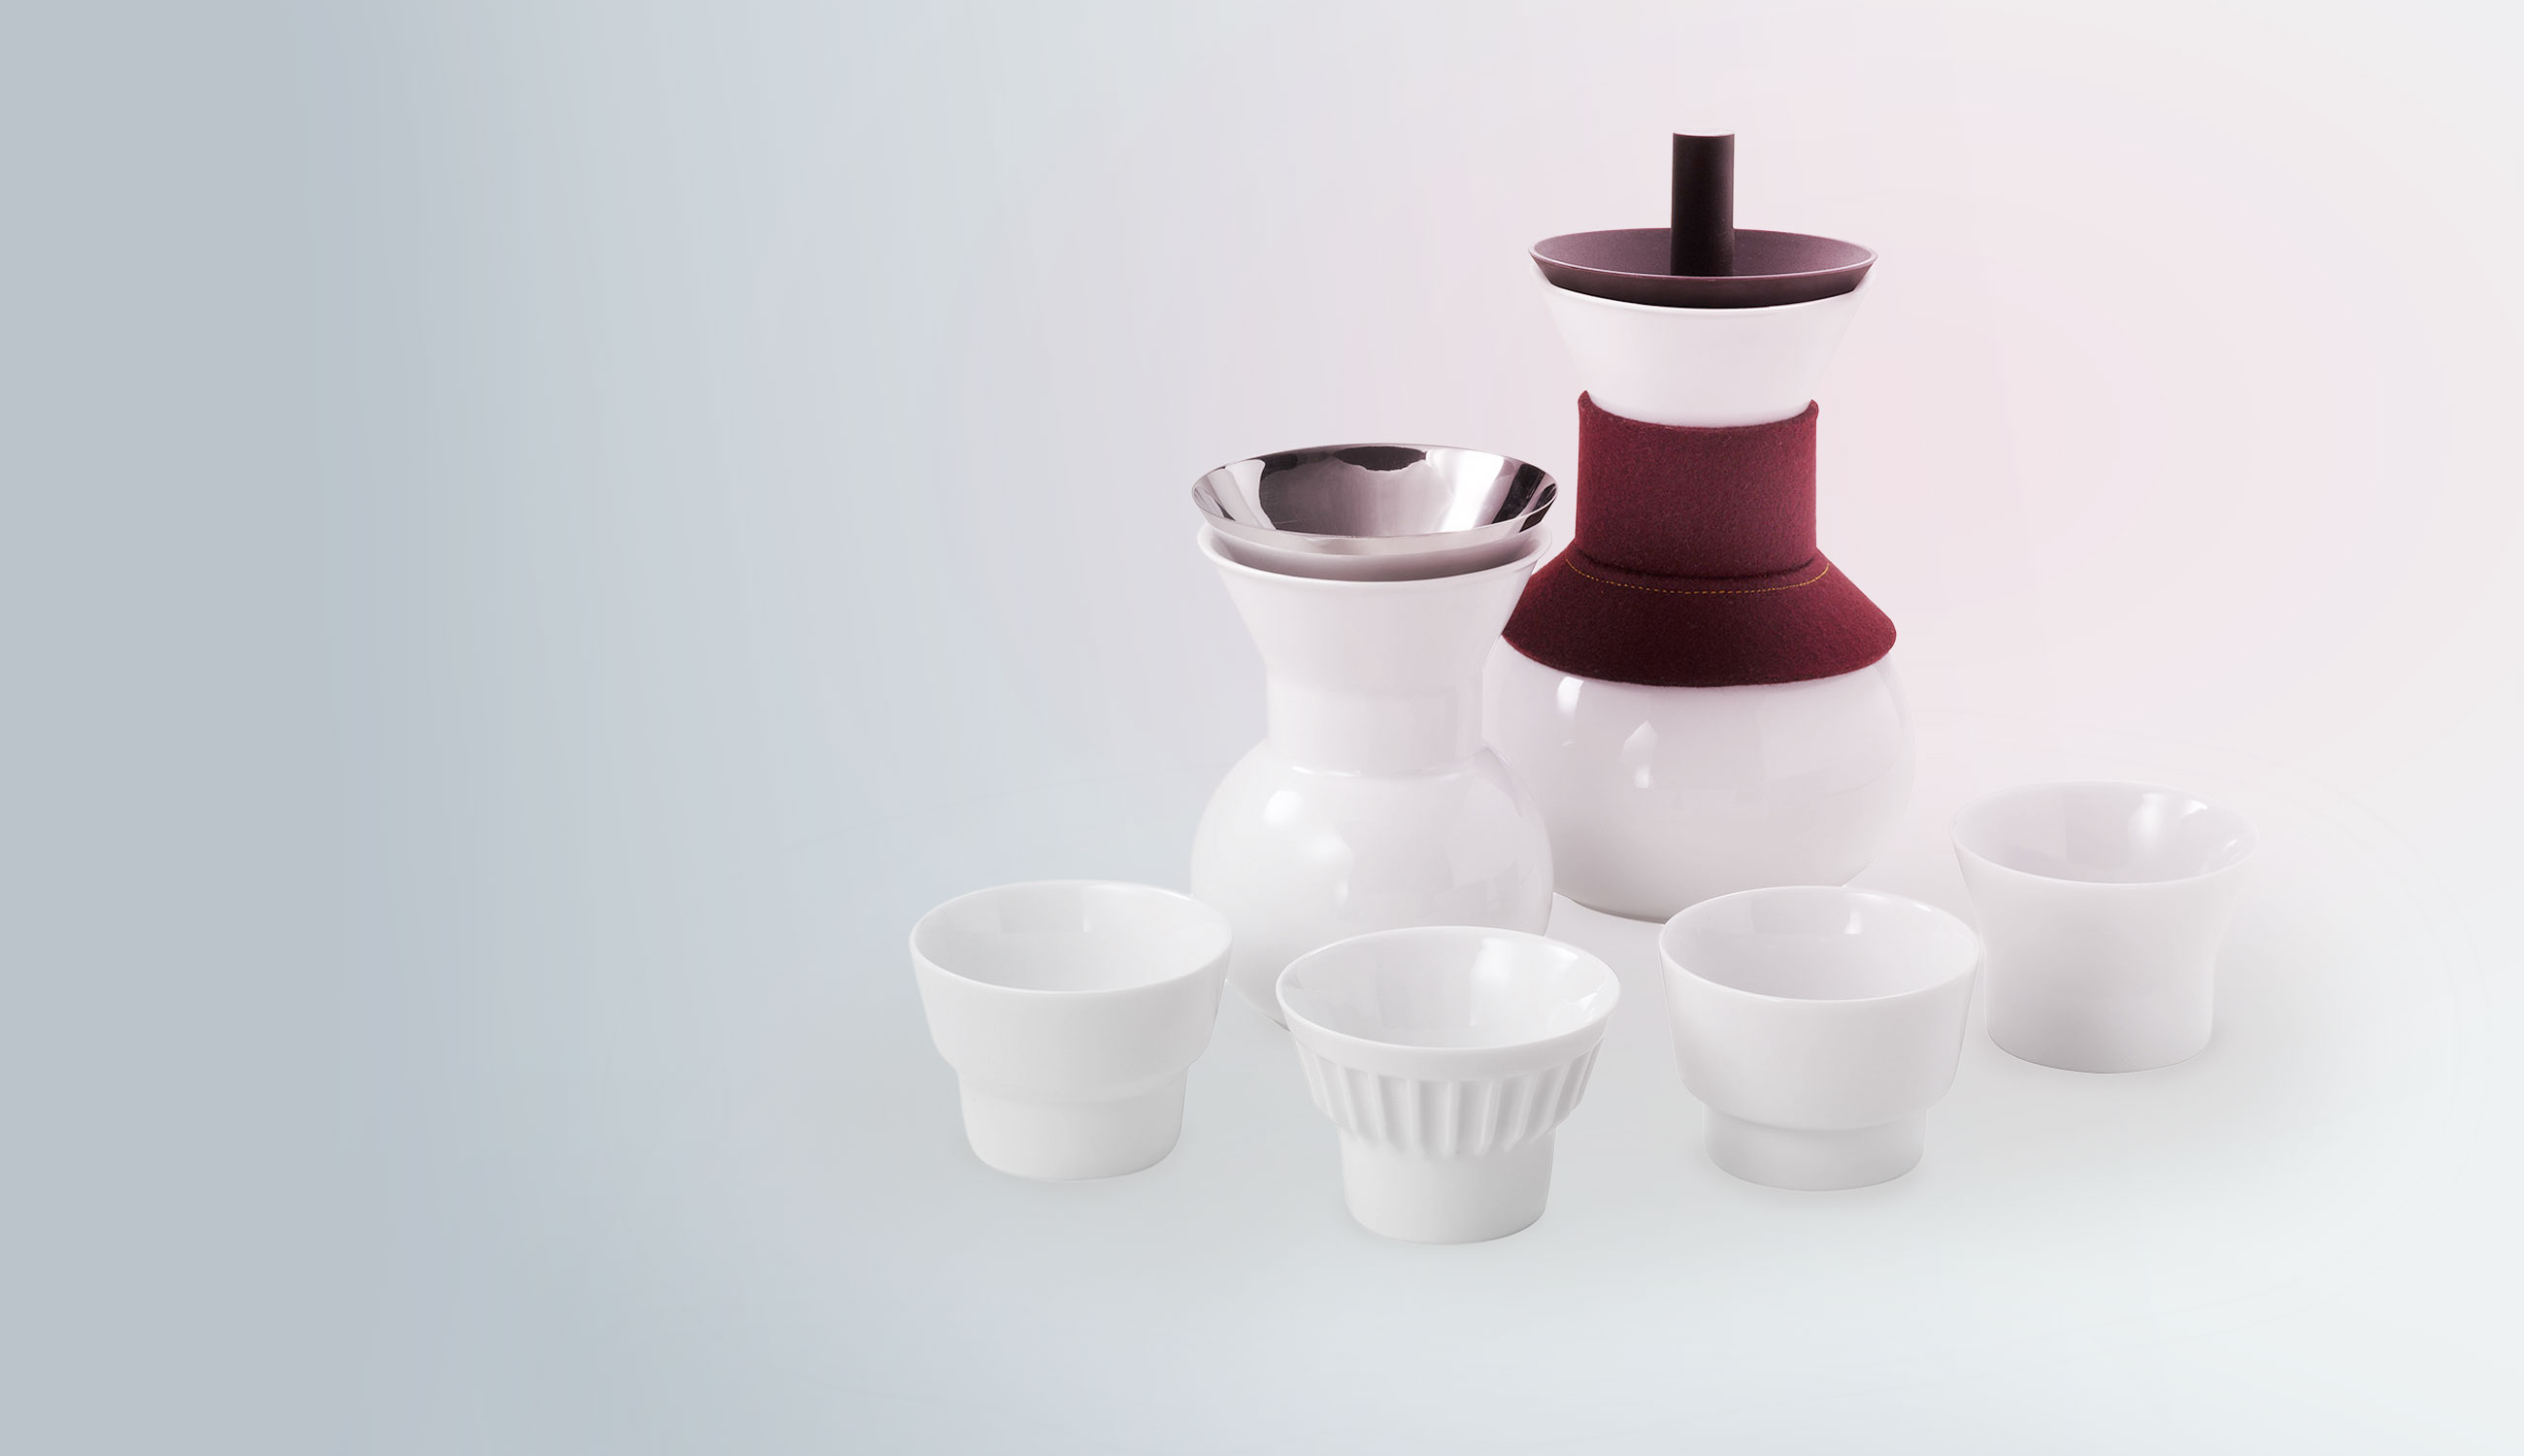 Greedy Mandarin Tea Set, Jia Inc.